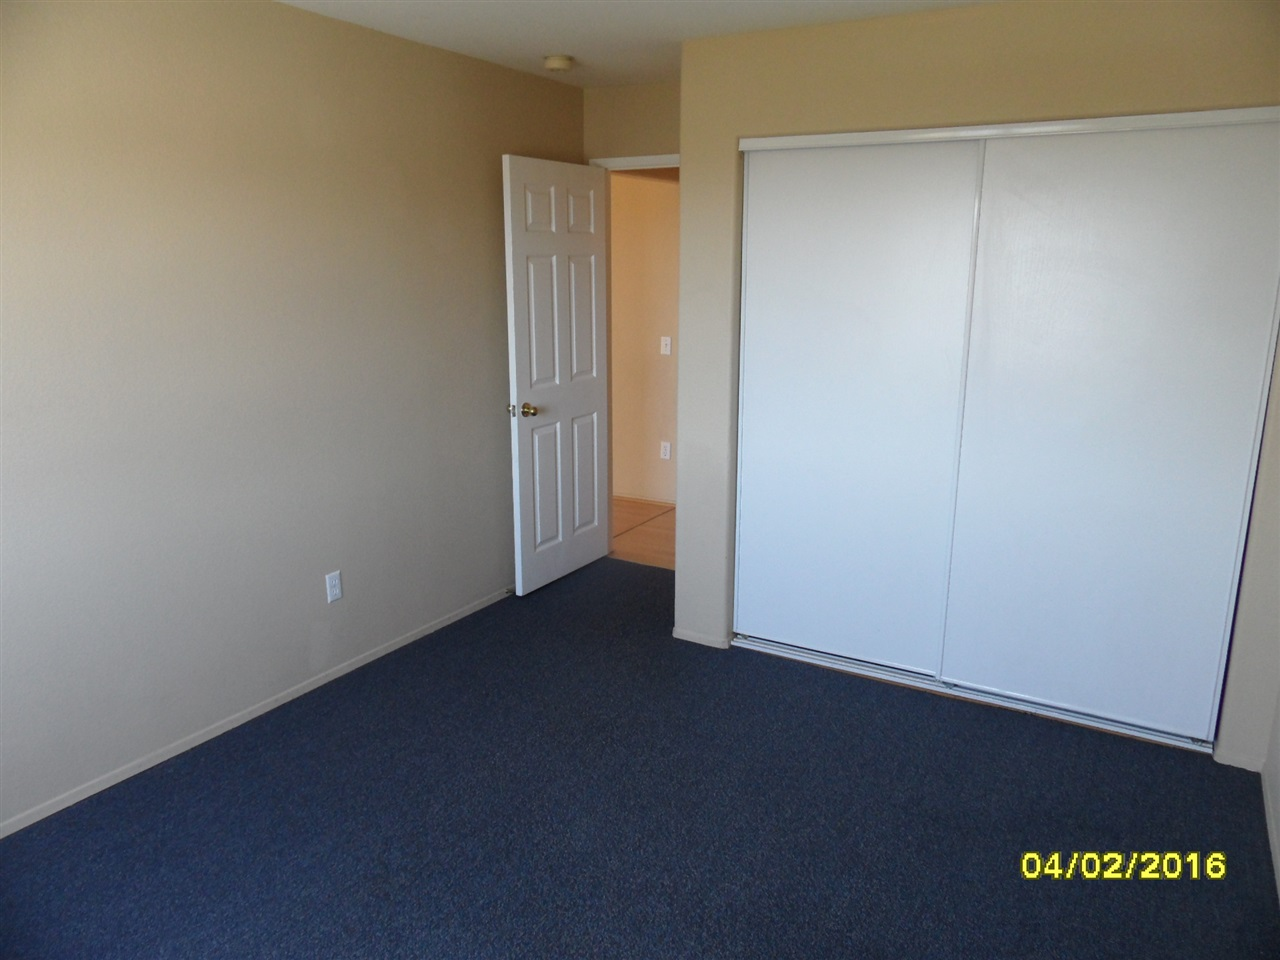 Photo 10: LINDA VISTA Condo for sale : 3 bedrooms : 2012 Coolidge St #93 in San Diego